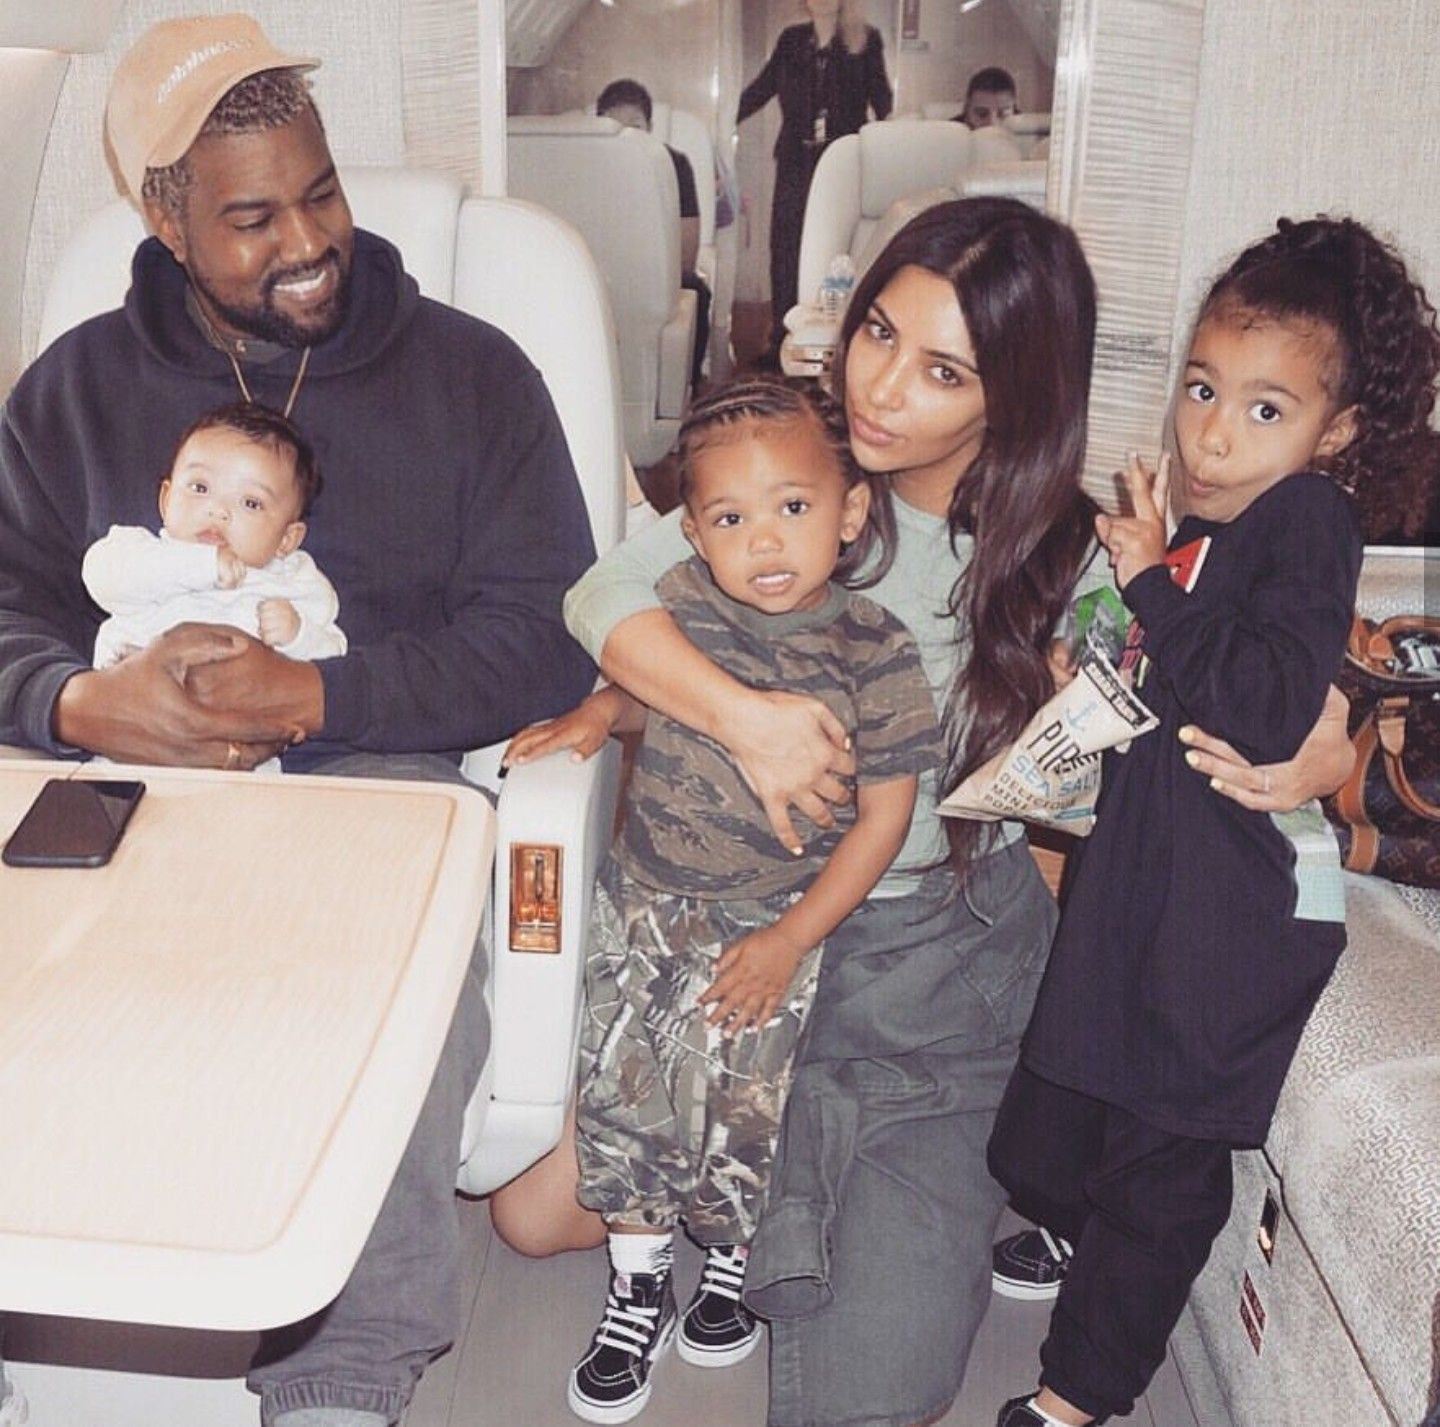 Pin By Abigail Nofziger On Goals Kim Kardashian And Kanye Kim And Kanye Kim Kardashian Kanye West